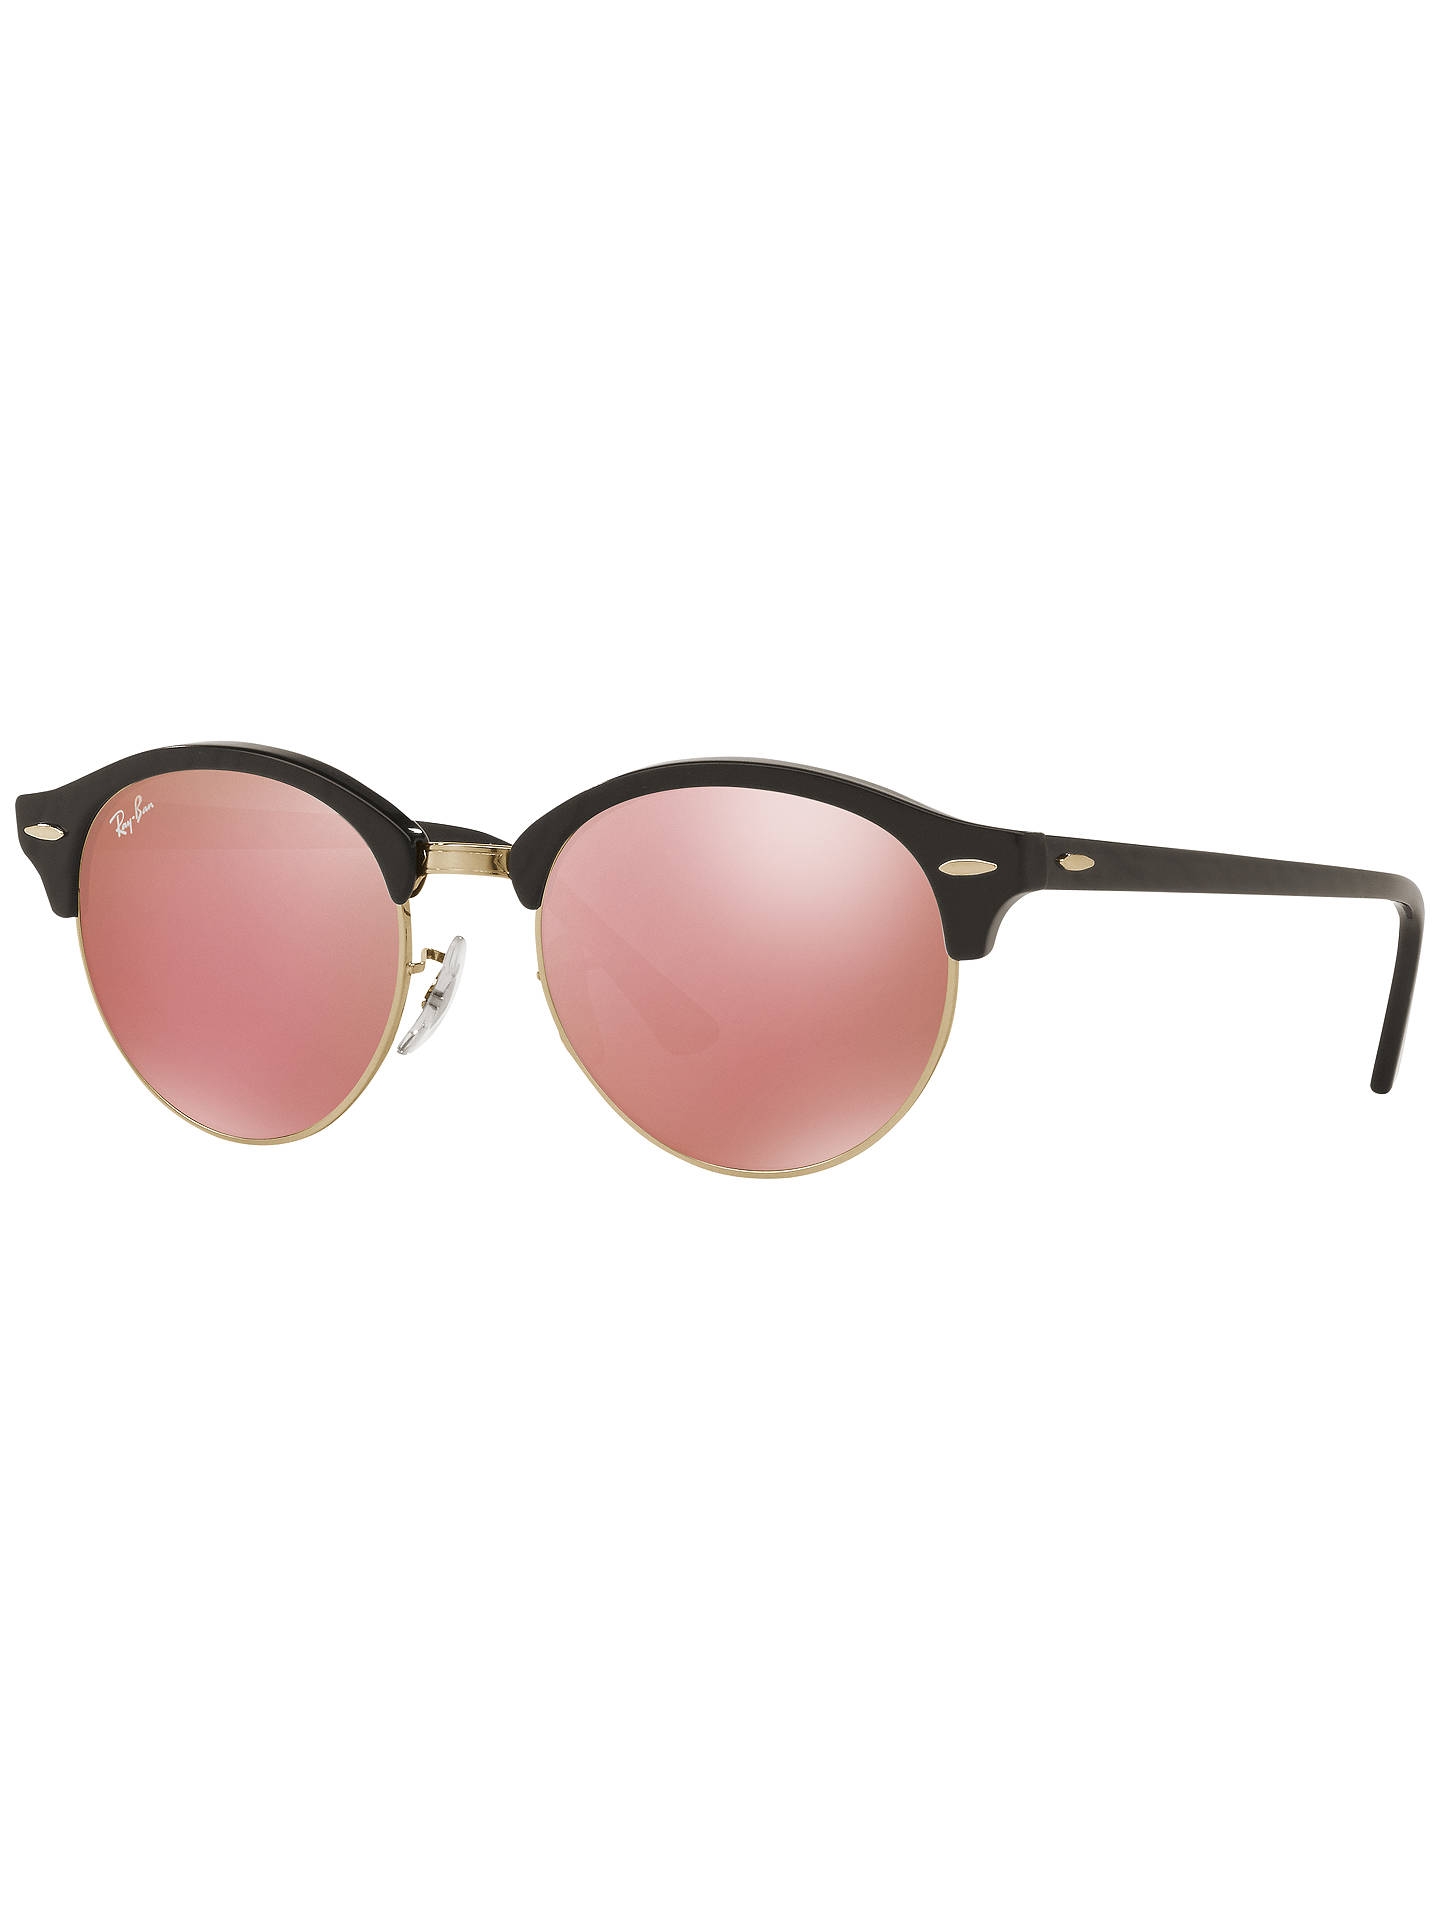 98a0d4a4cb Buy Ray-Ban RB4246 Unisex Clubround Round Sunglasses, Black/Cherry Blossom  Online at ...